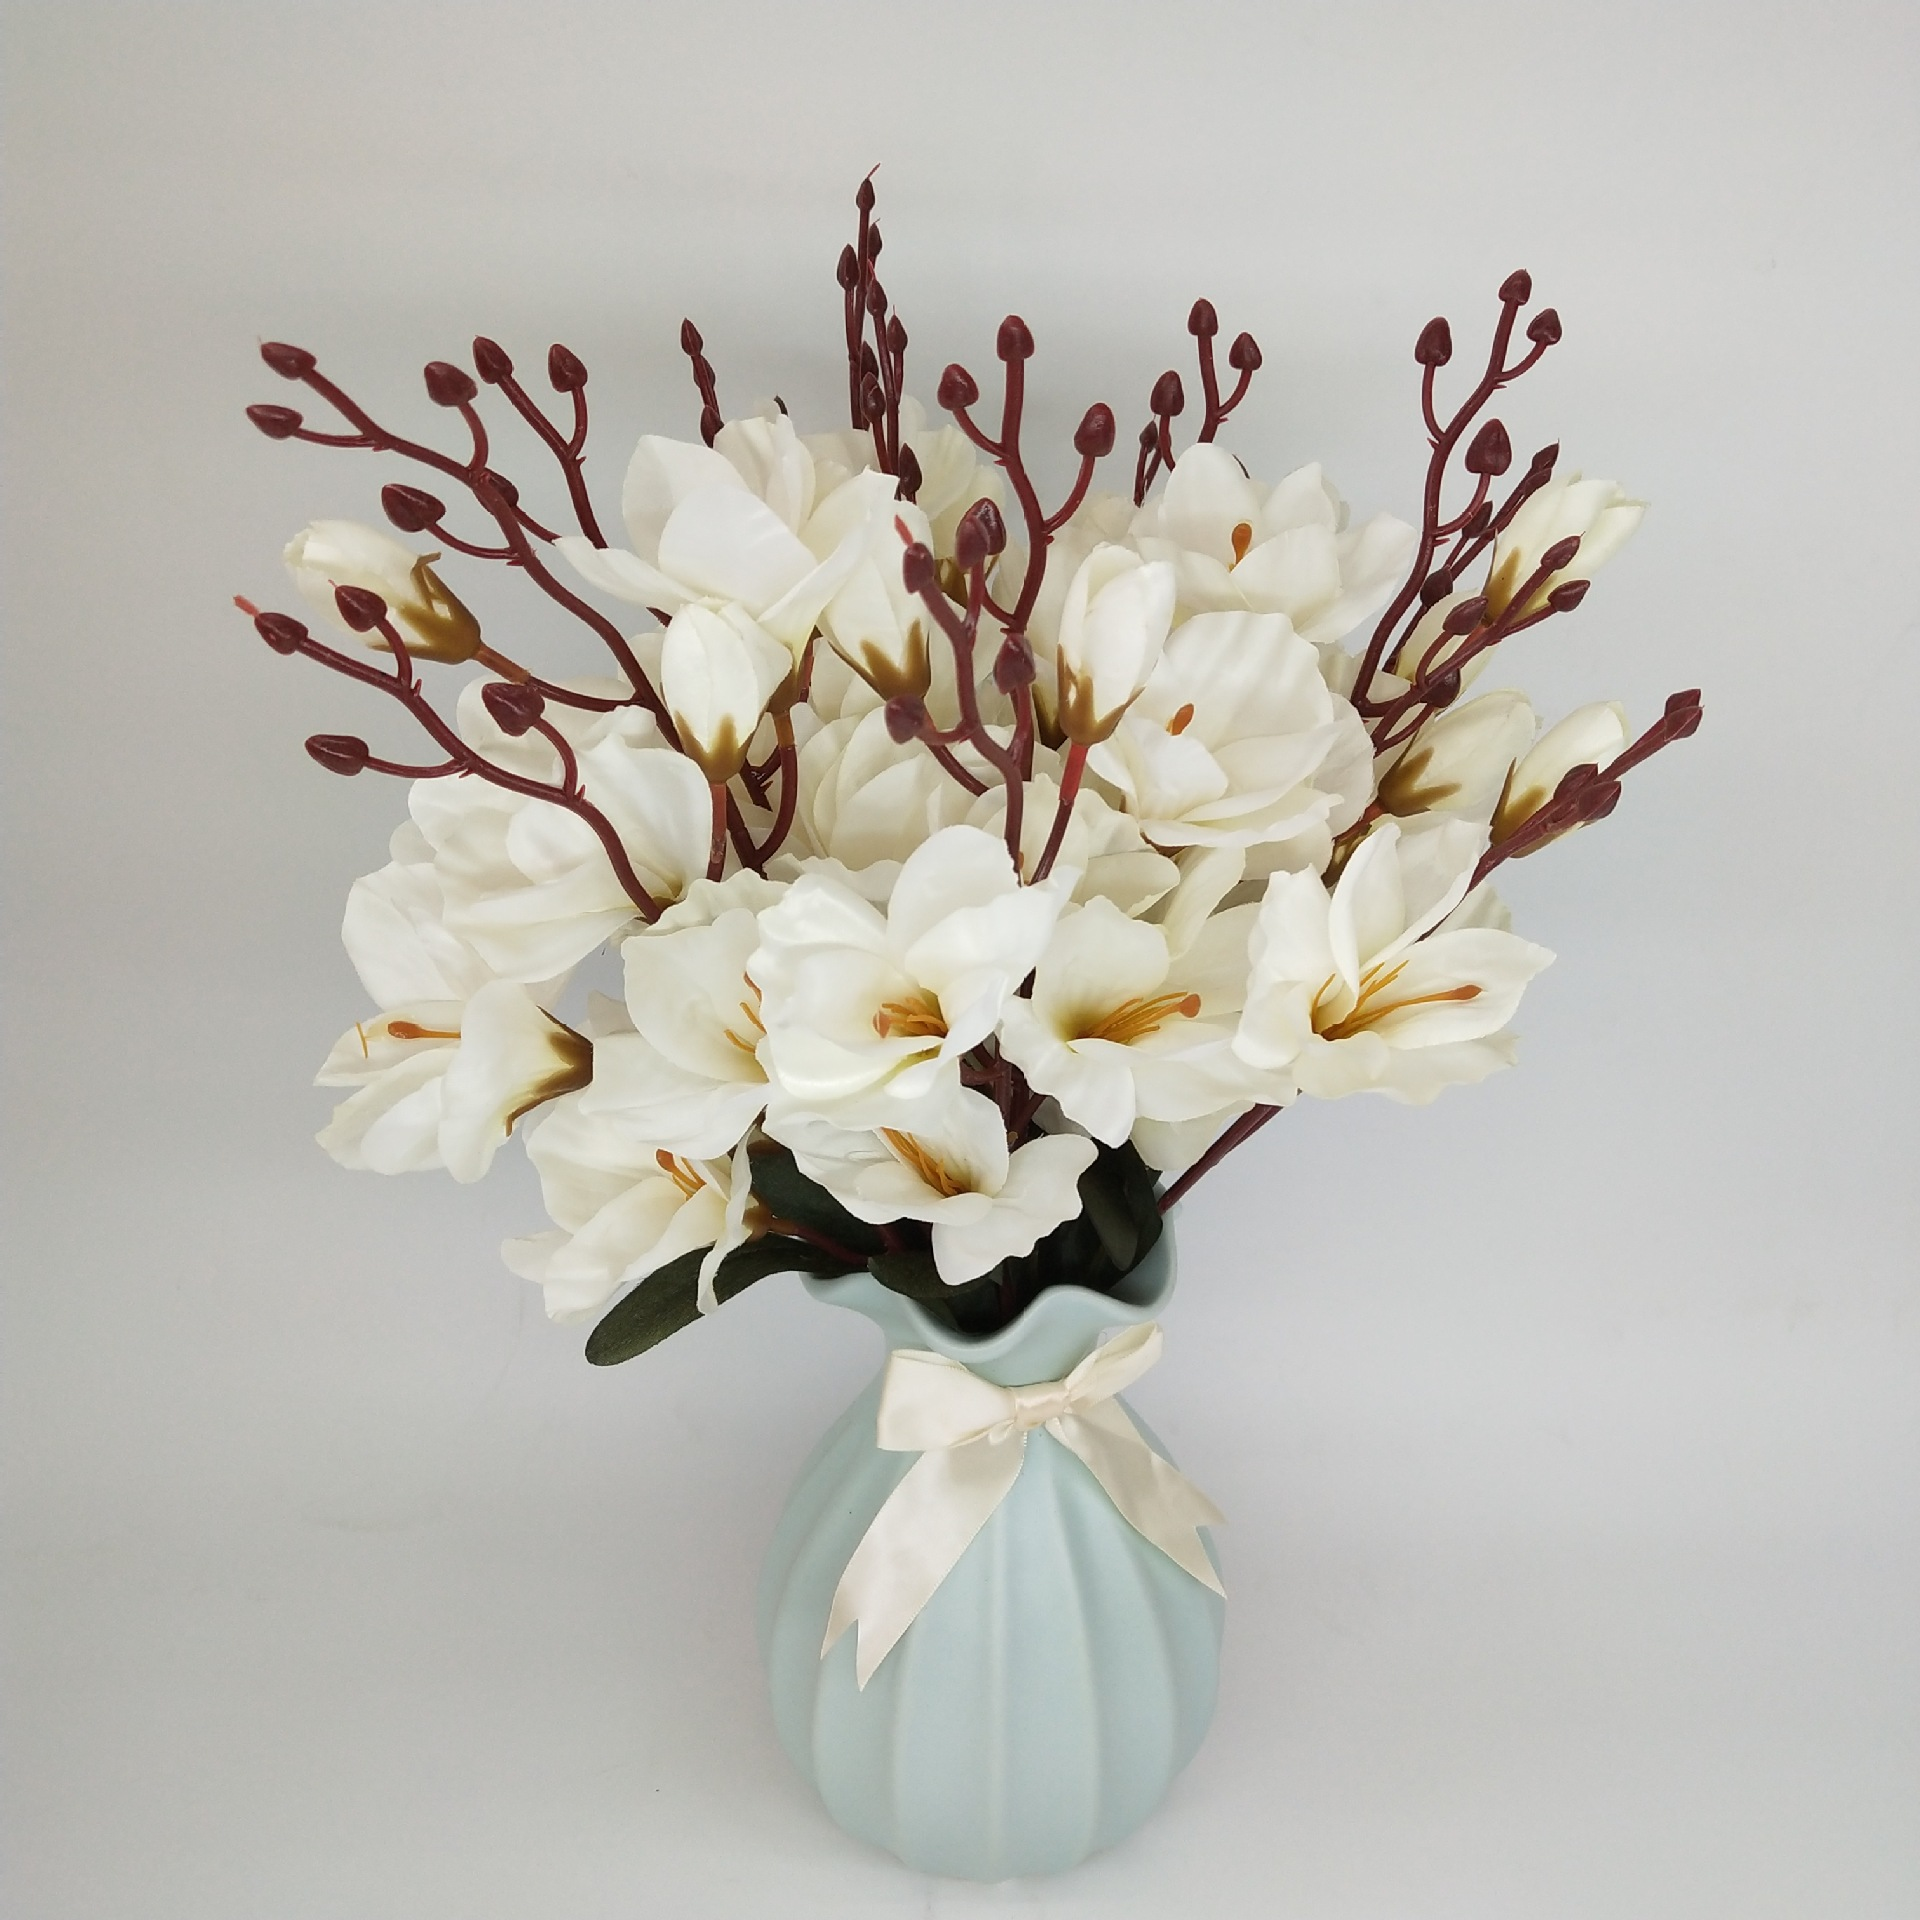 1 Bouquet Simulation Magnolia Flower Snow Orchid Freesia Home Indoor Wdding Decoration Artificial Flowers Fake Silk Plant Flower